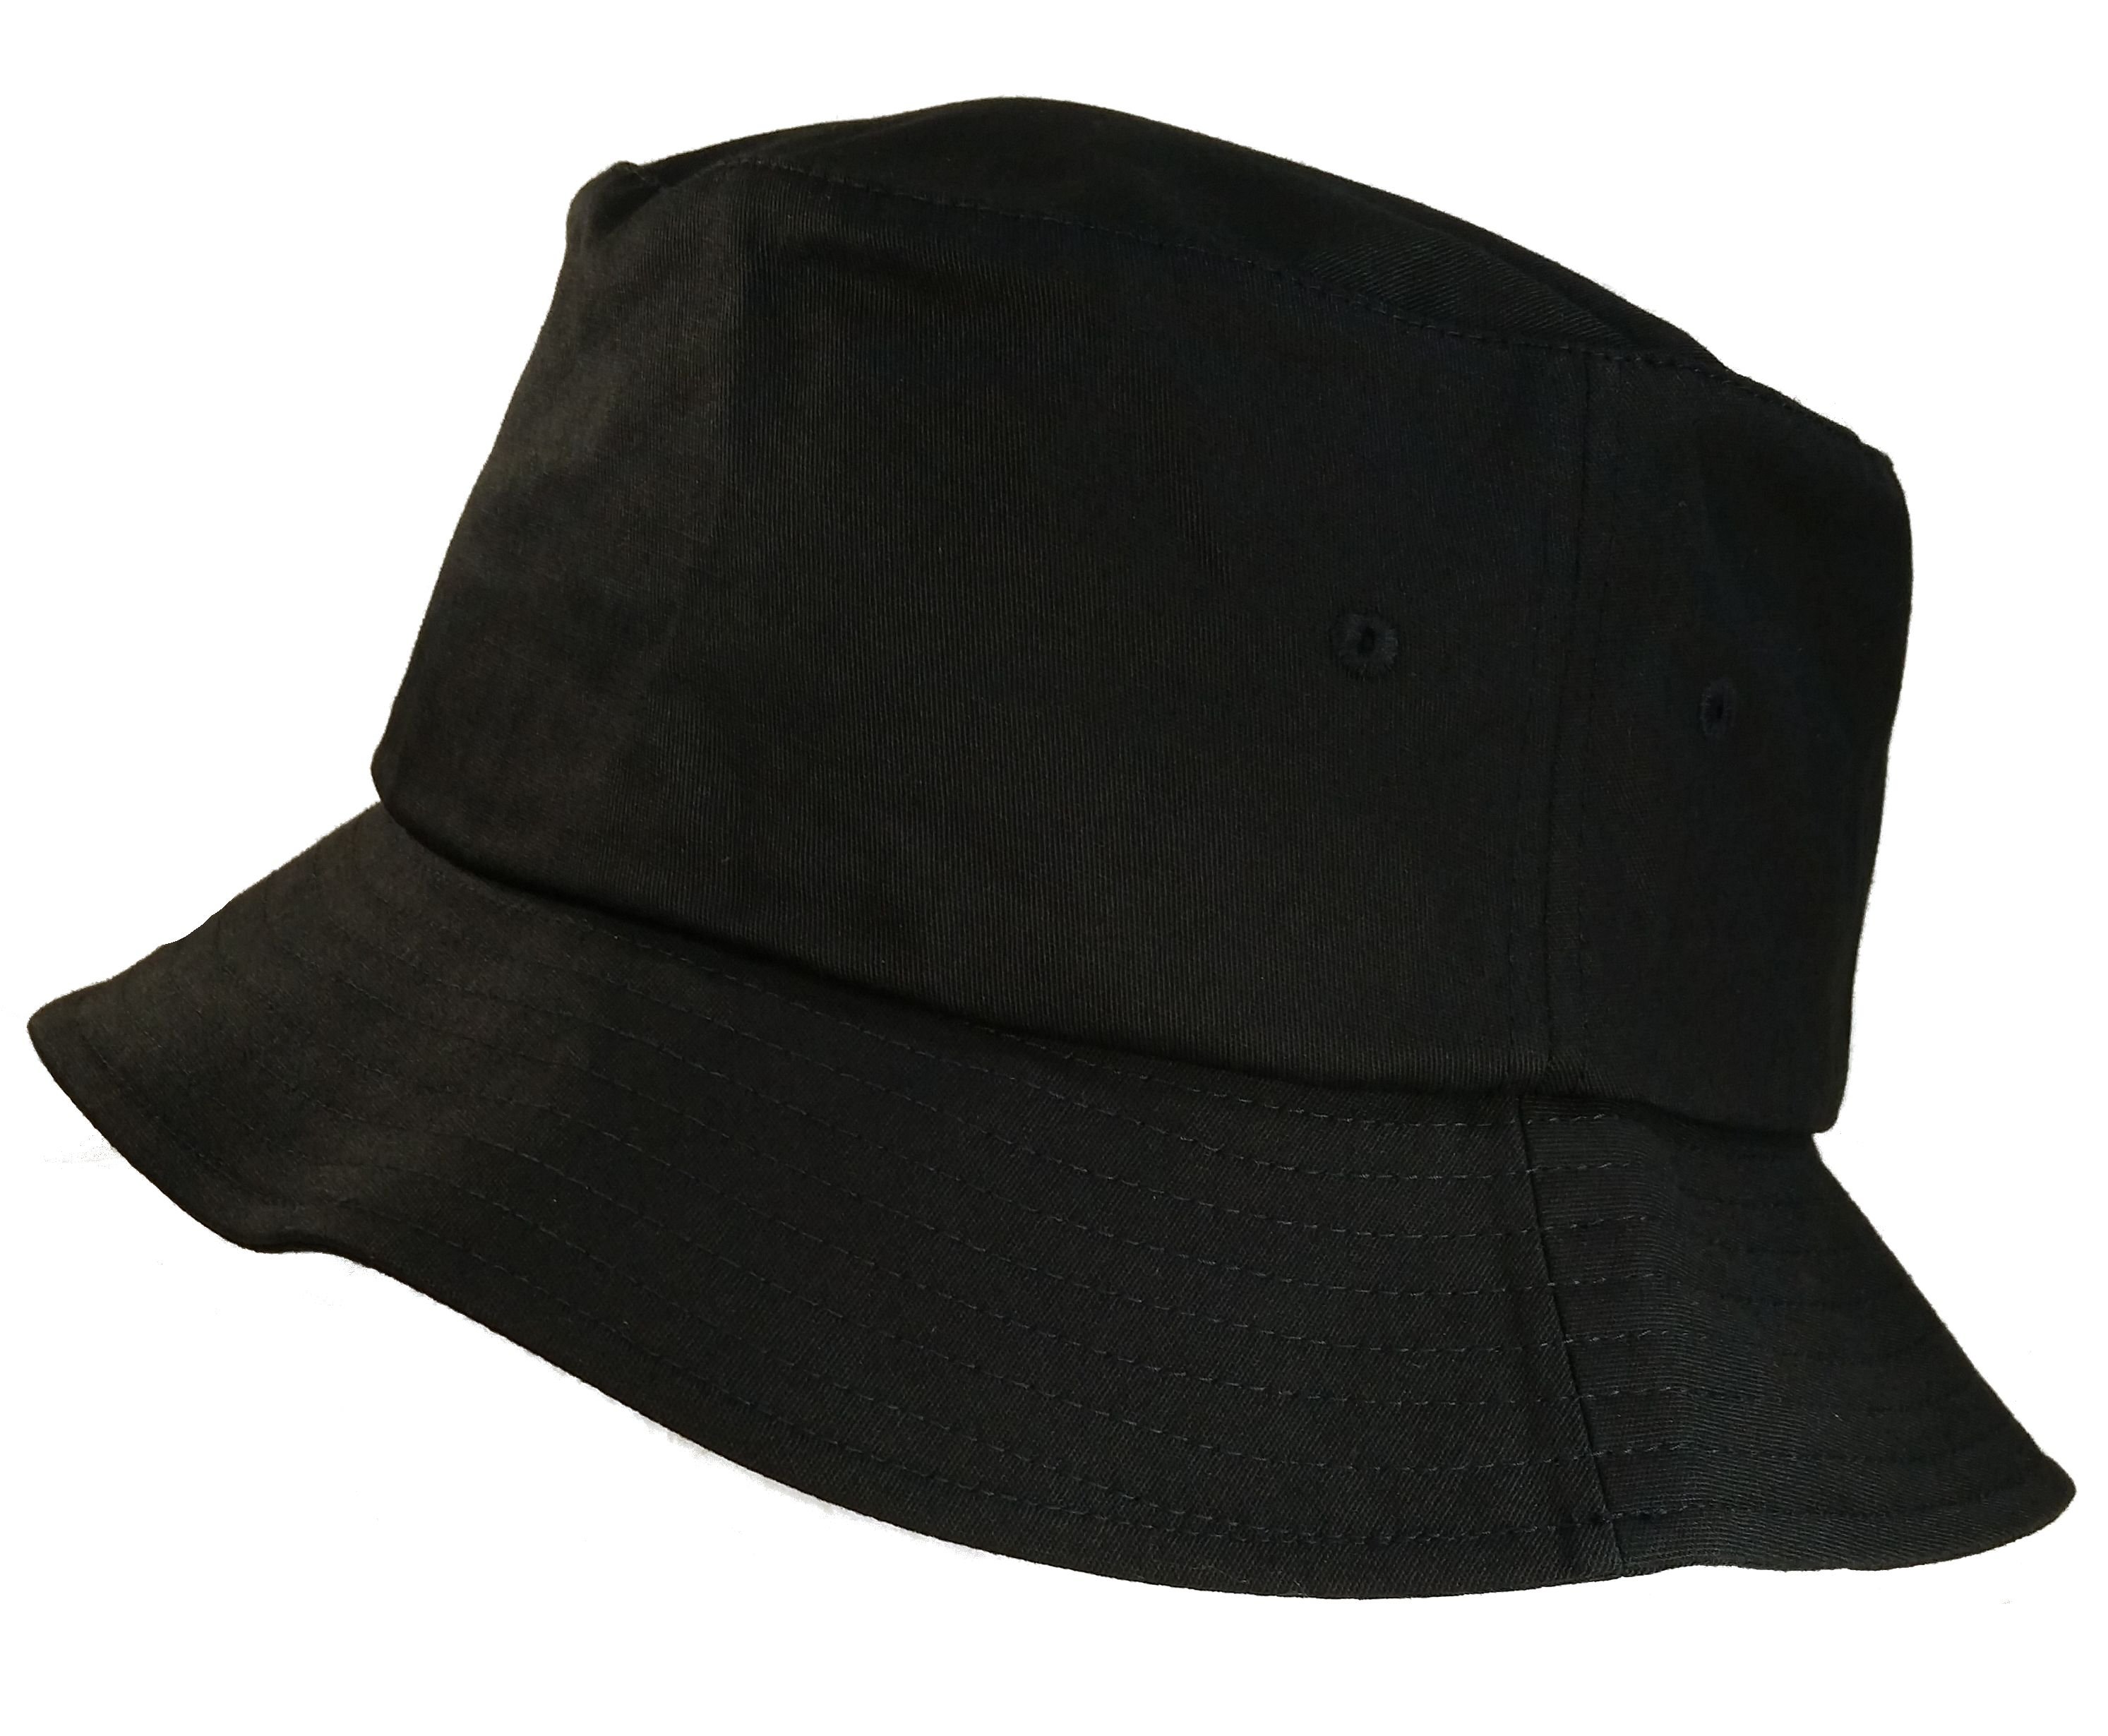 Big Black Bucket Hat 5250d89e67b